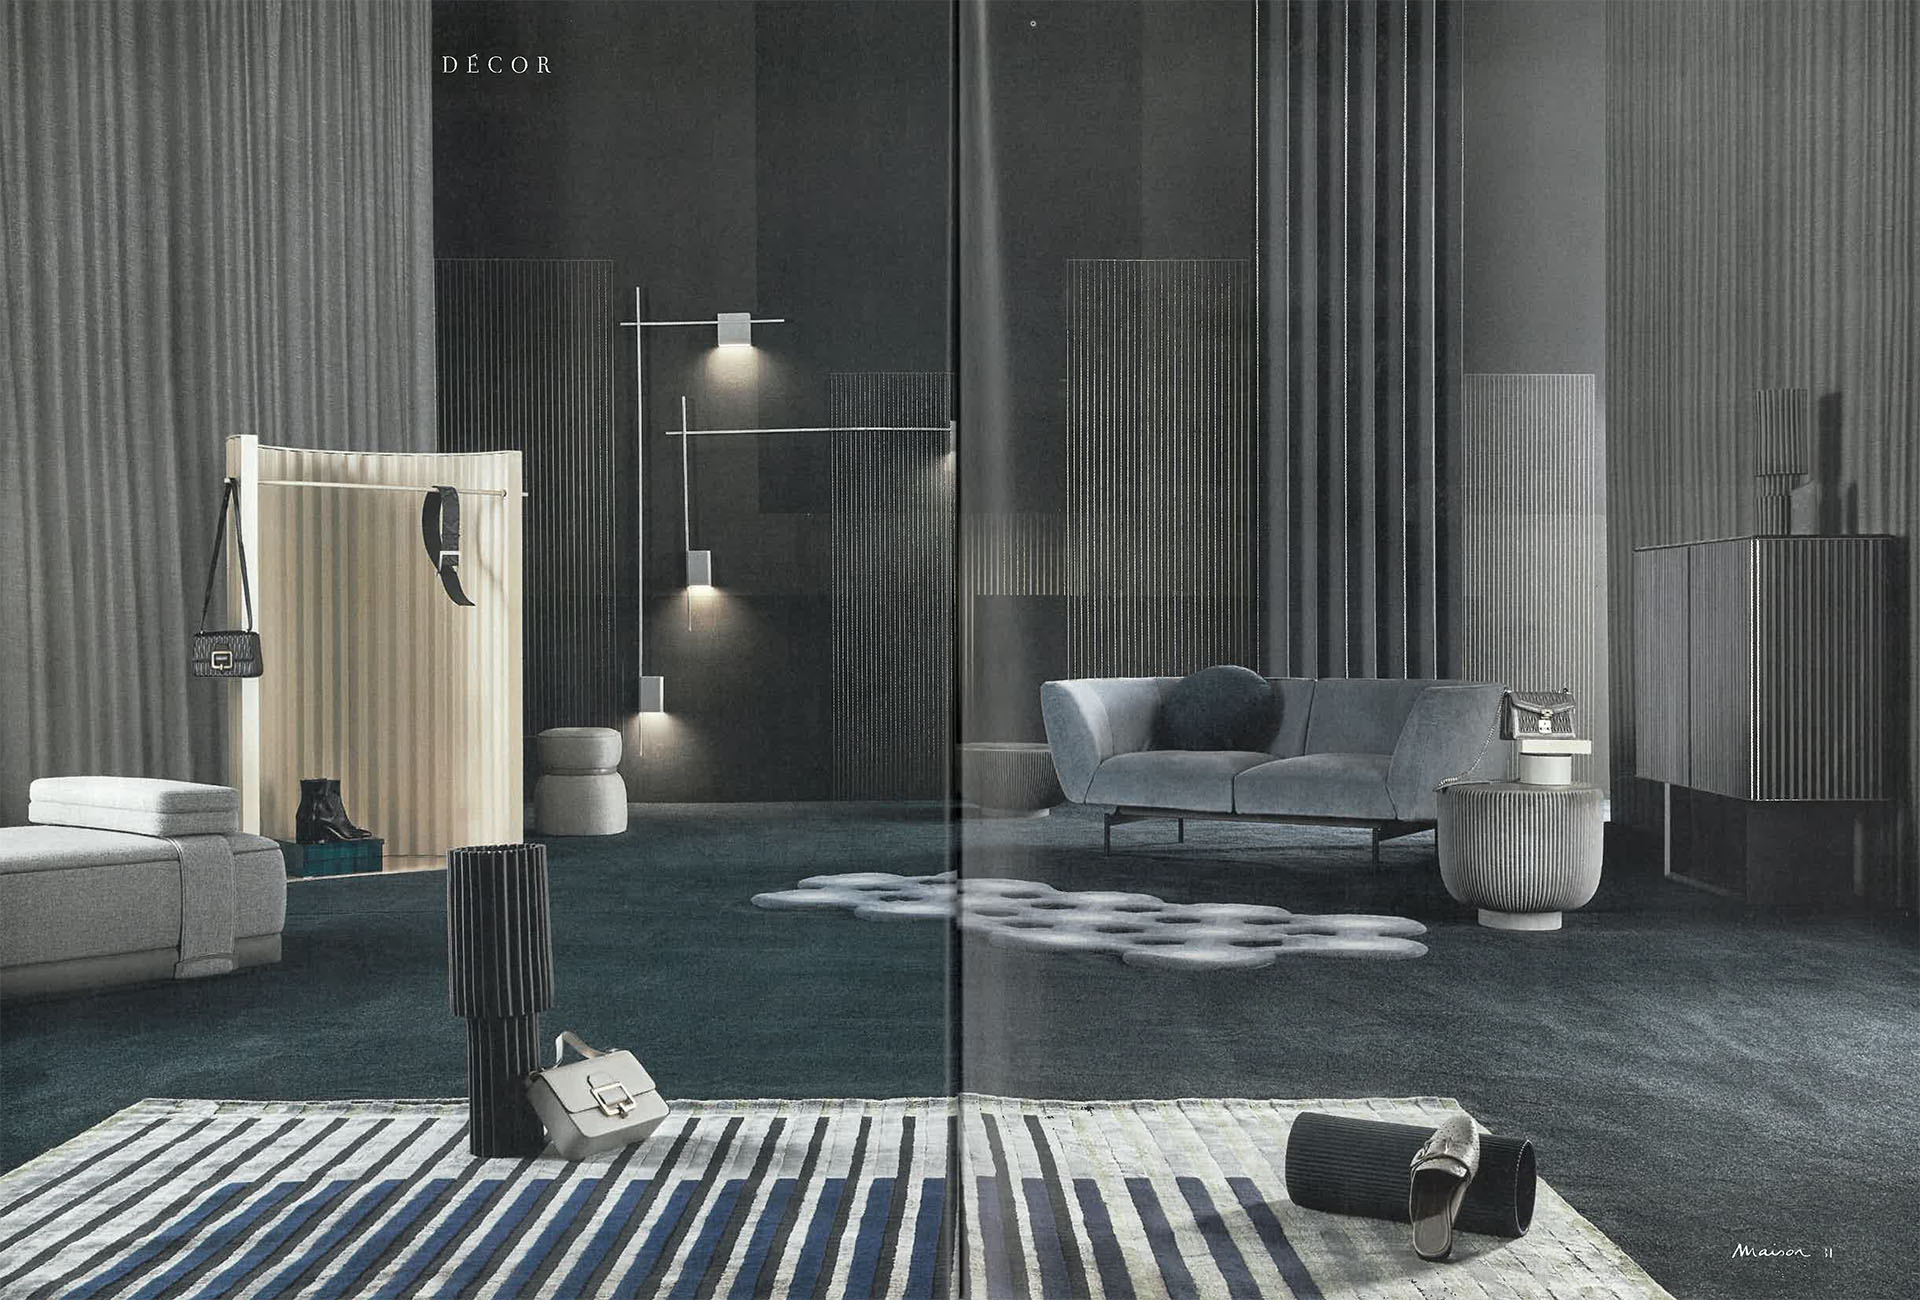 Mobili Bagno Marie Claire.Marie Claire Maison Italy December 2019 January 2020 Baxter